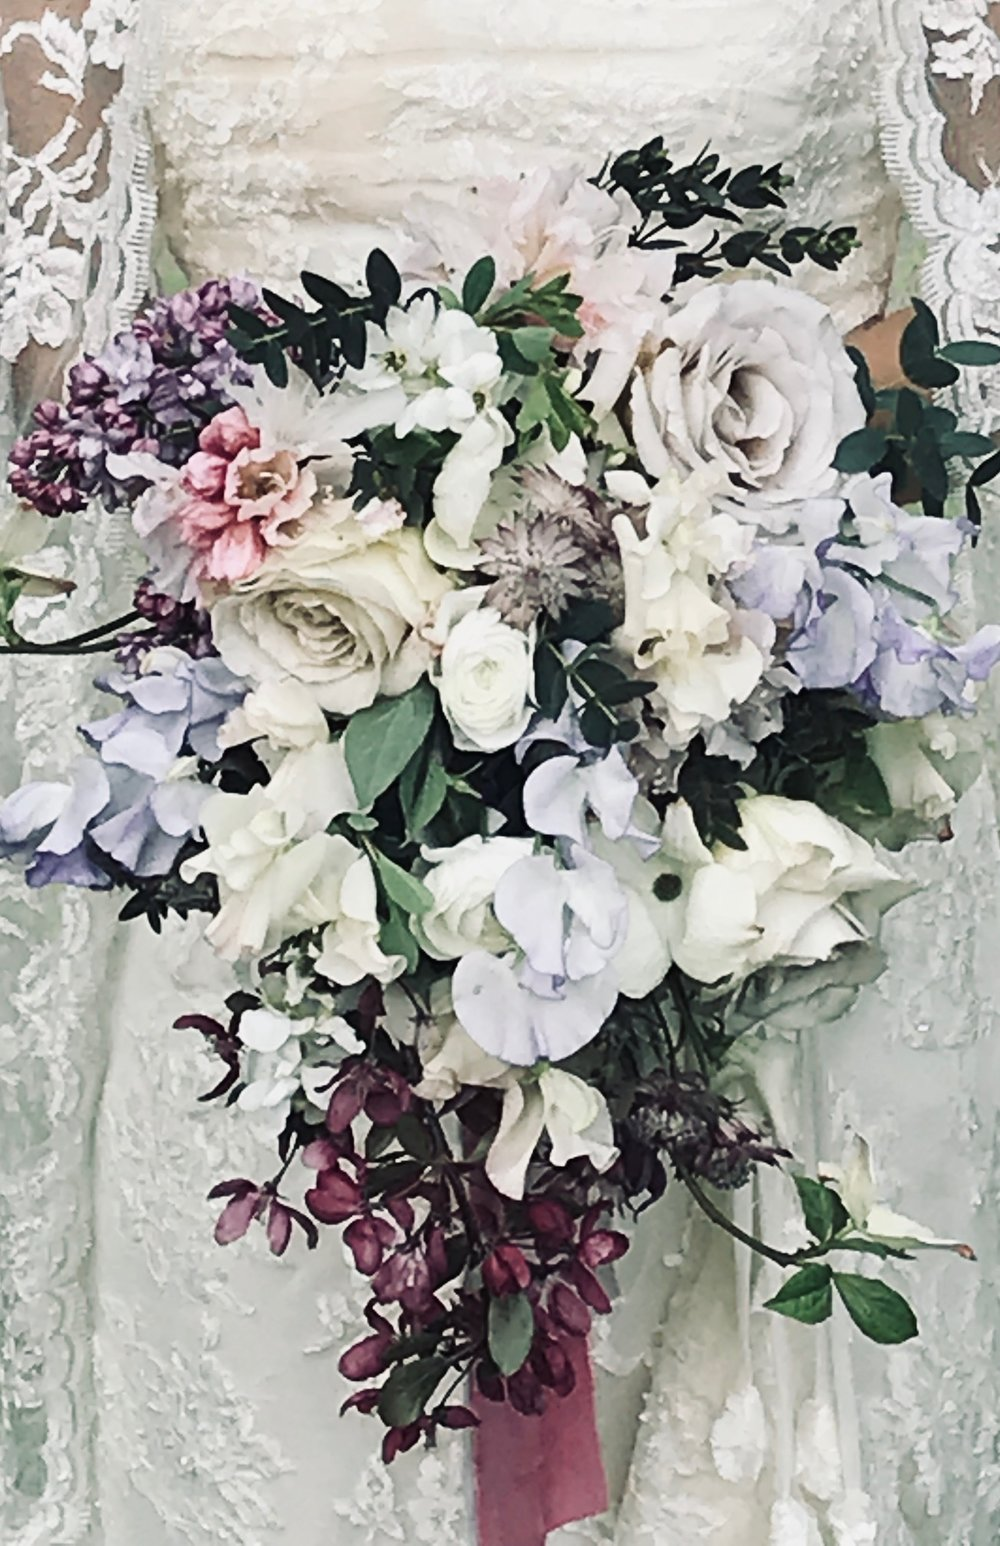 Floristry Classes Sussex Learn Floristry In Sussex